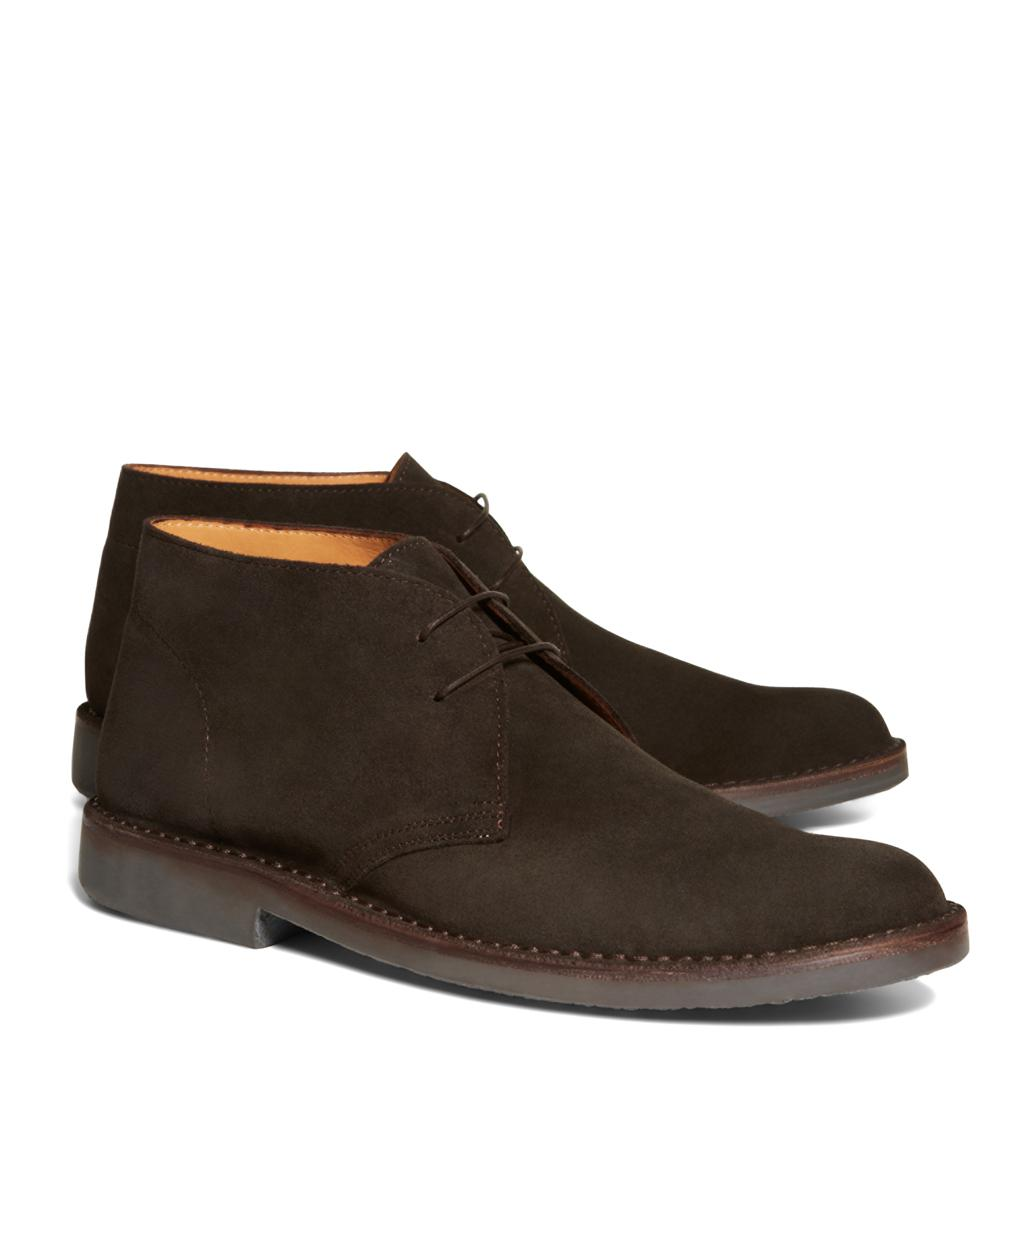 d5699156f9a Lyst - Brooks Brothers Field Chukka Boots in Brown for Men